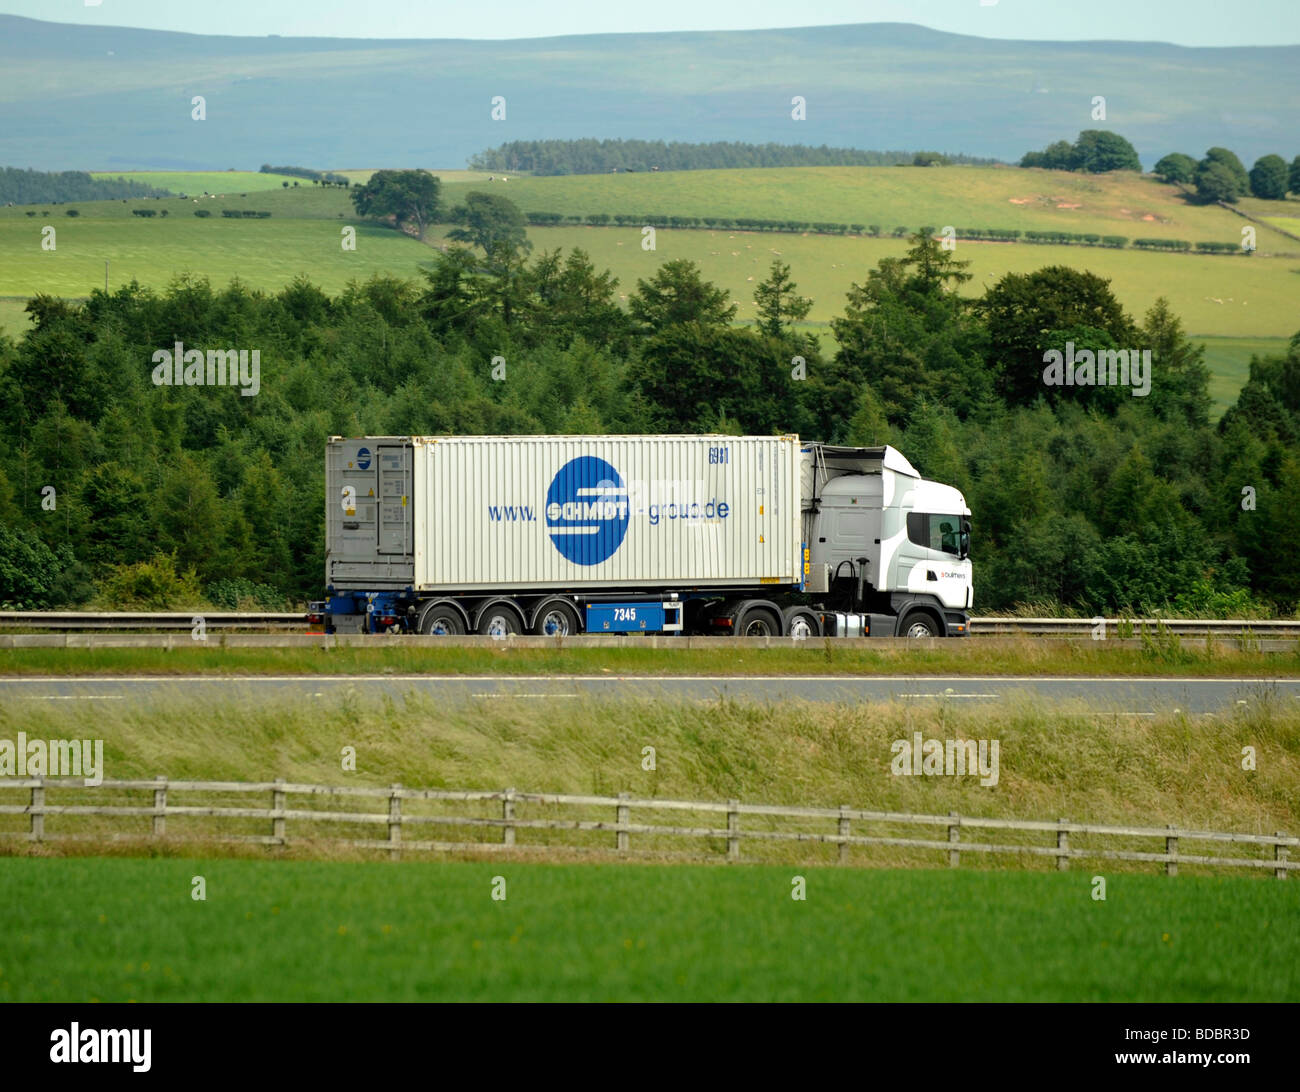 Scania Truck Stock Photos Amp Scania Truck Stock Images Alamy